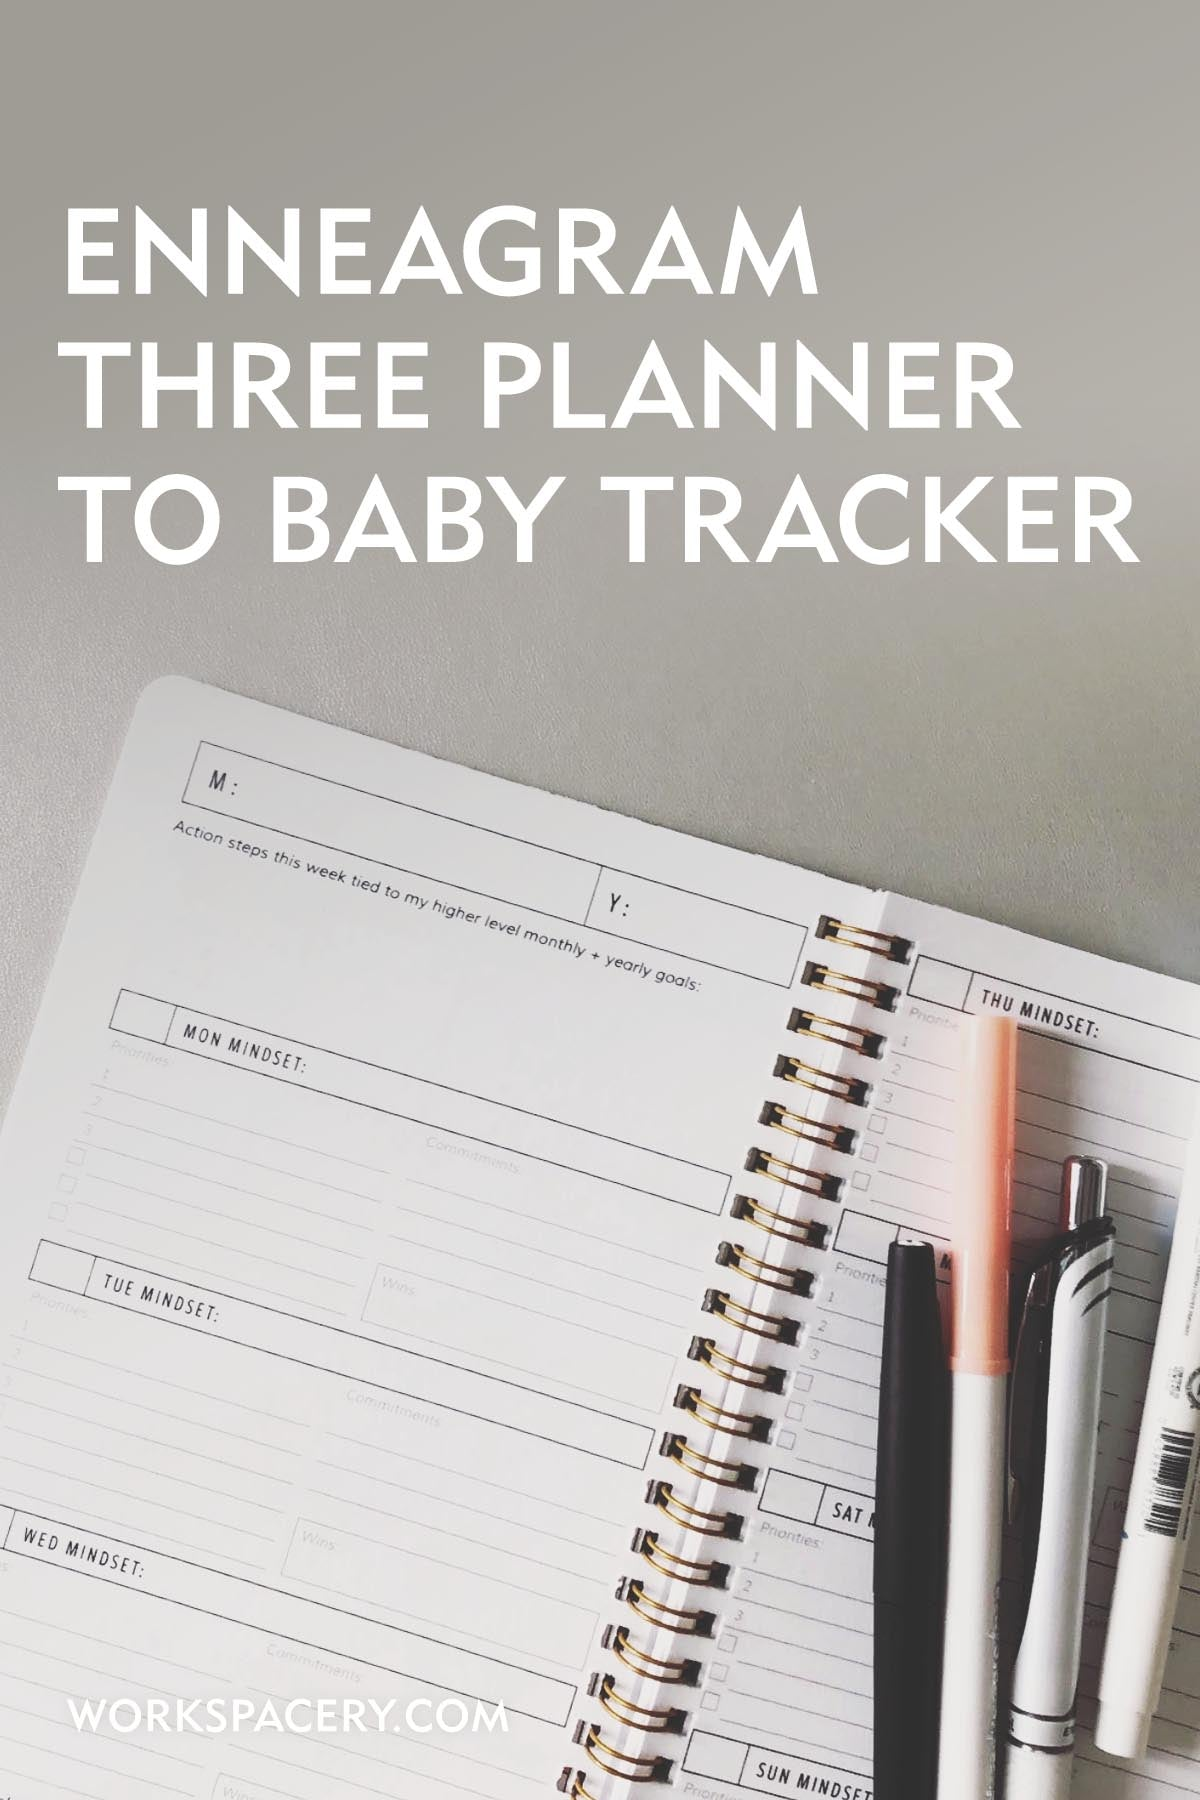 Enneagram Three Planner to Baby Tracker